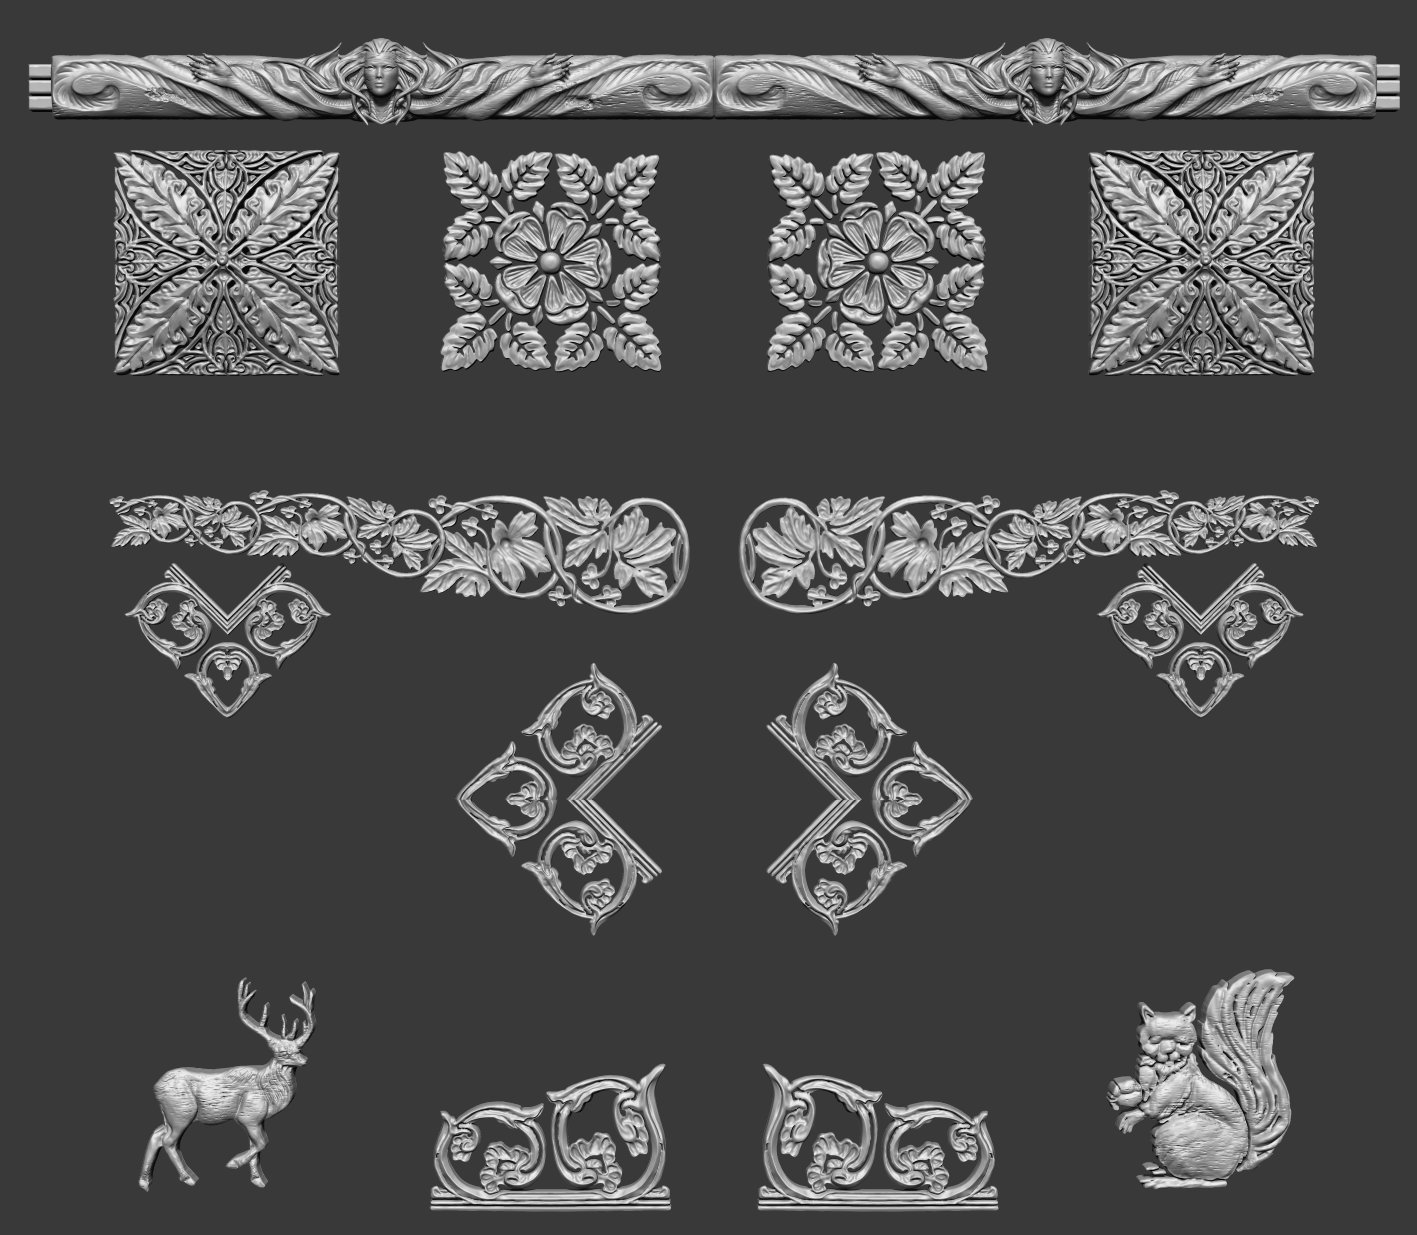 Smaller Carving Elements